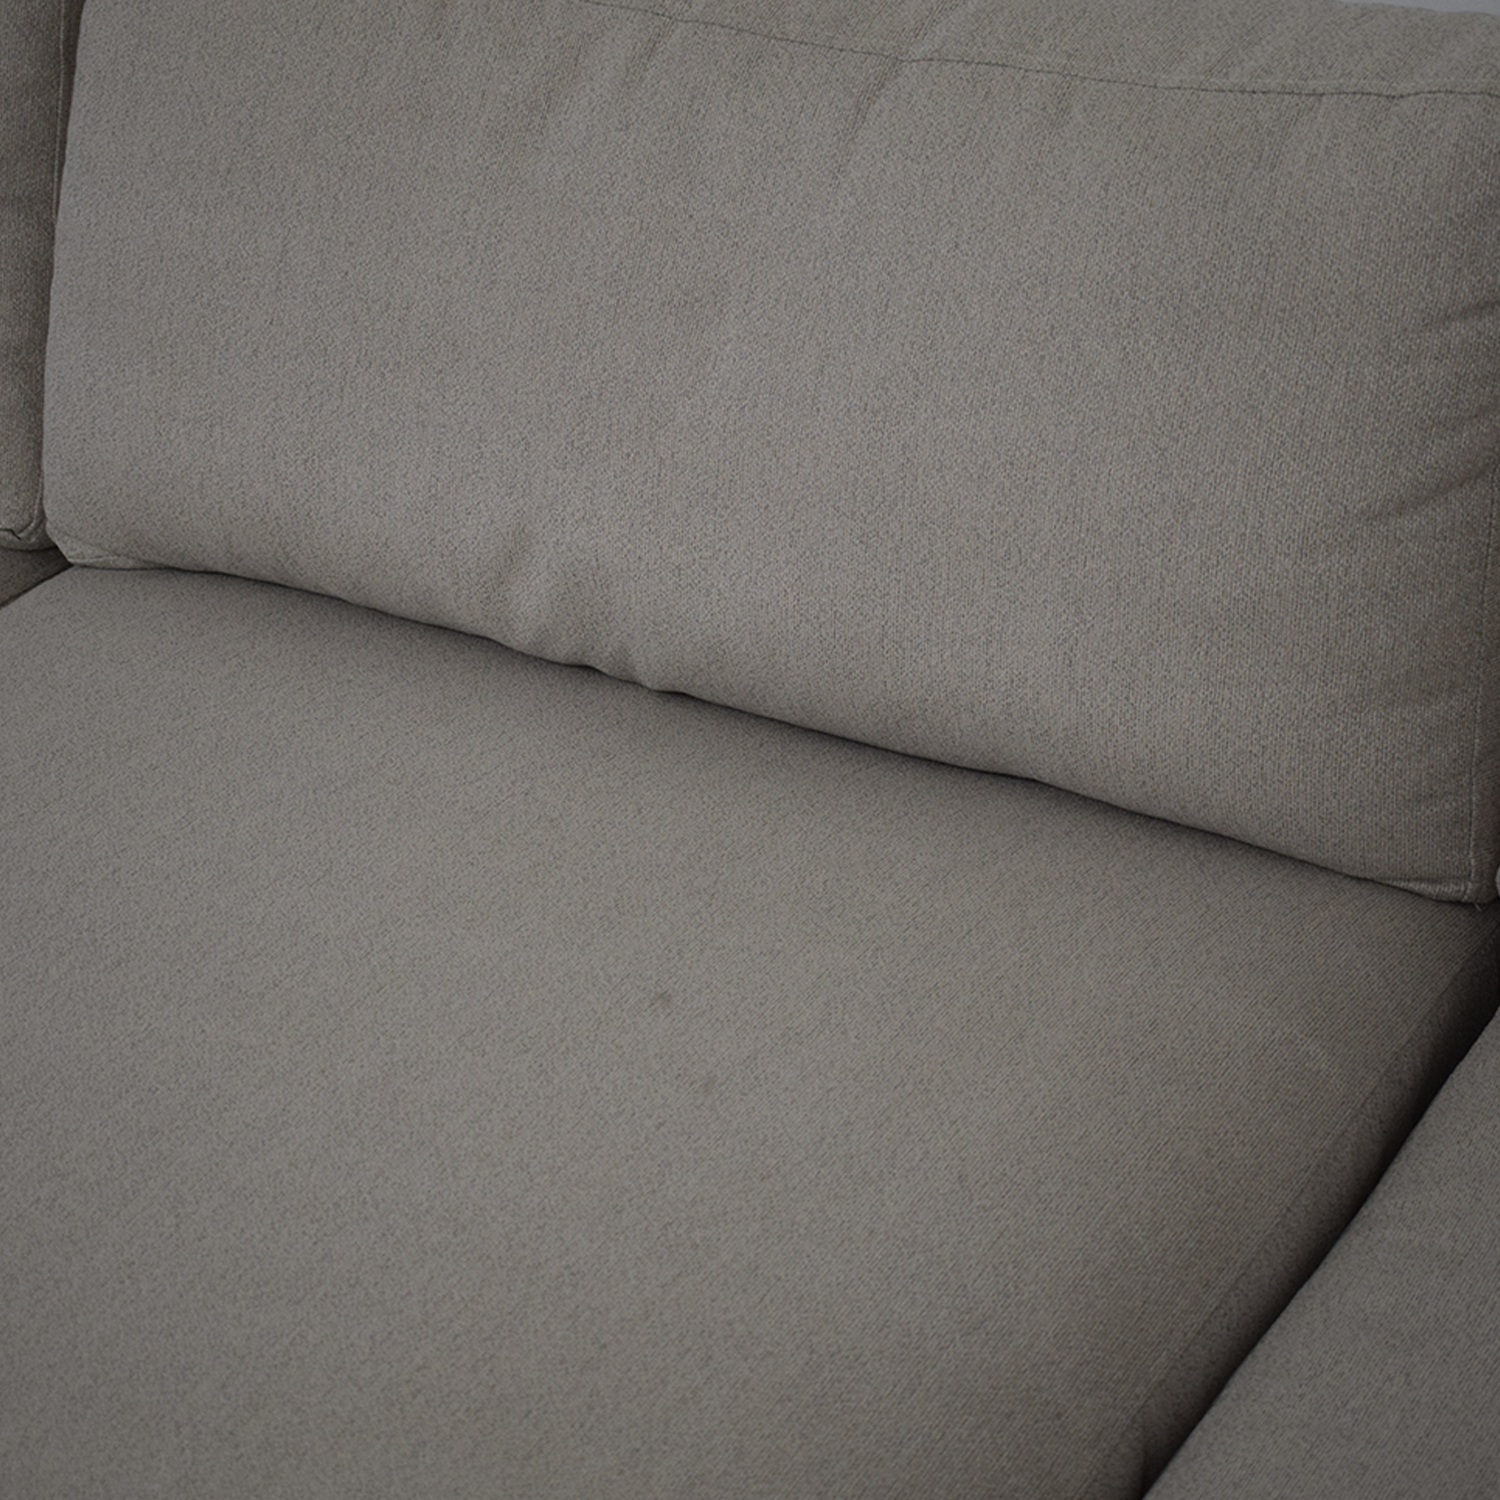 Room & Board Room & Board Linger Sofa with Chaise coupon